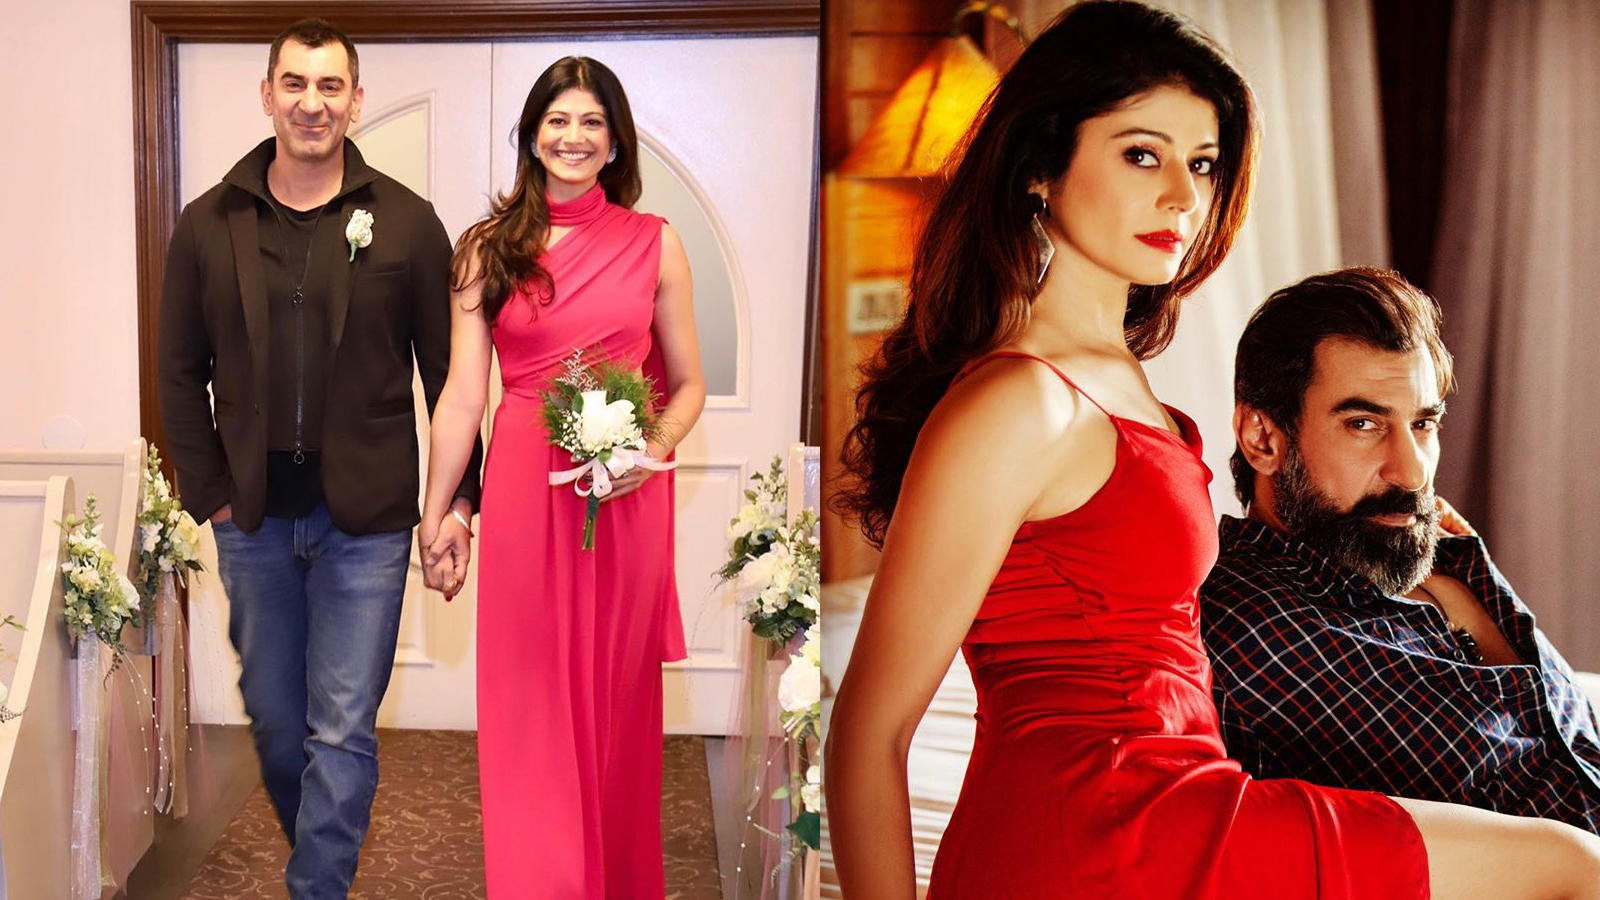 pooja-batra-shares-unseen-wedding-pics-as-she-celebrates-her-first-anniversary-with-nawab-shah